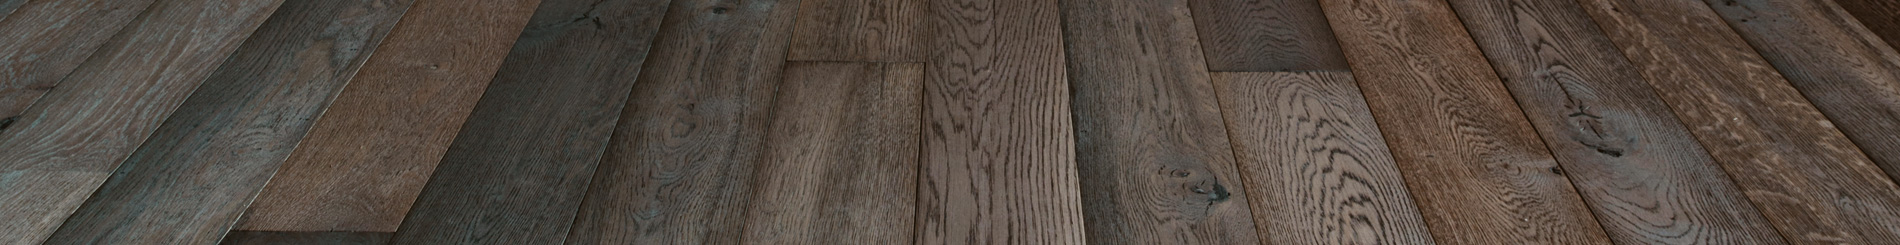 Authentic Pine Floors Promotional Banner